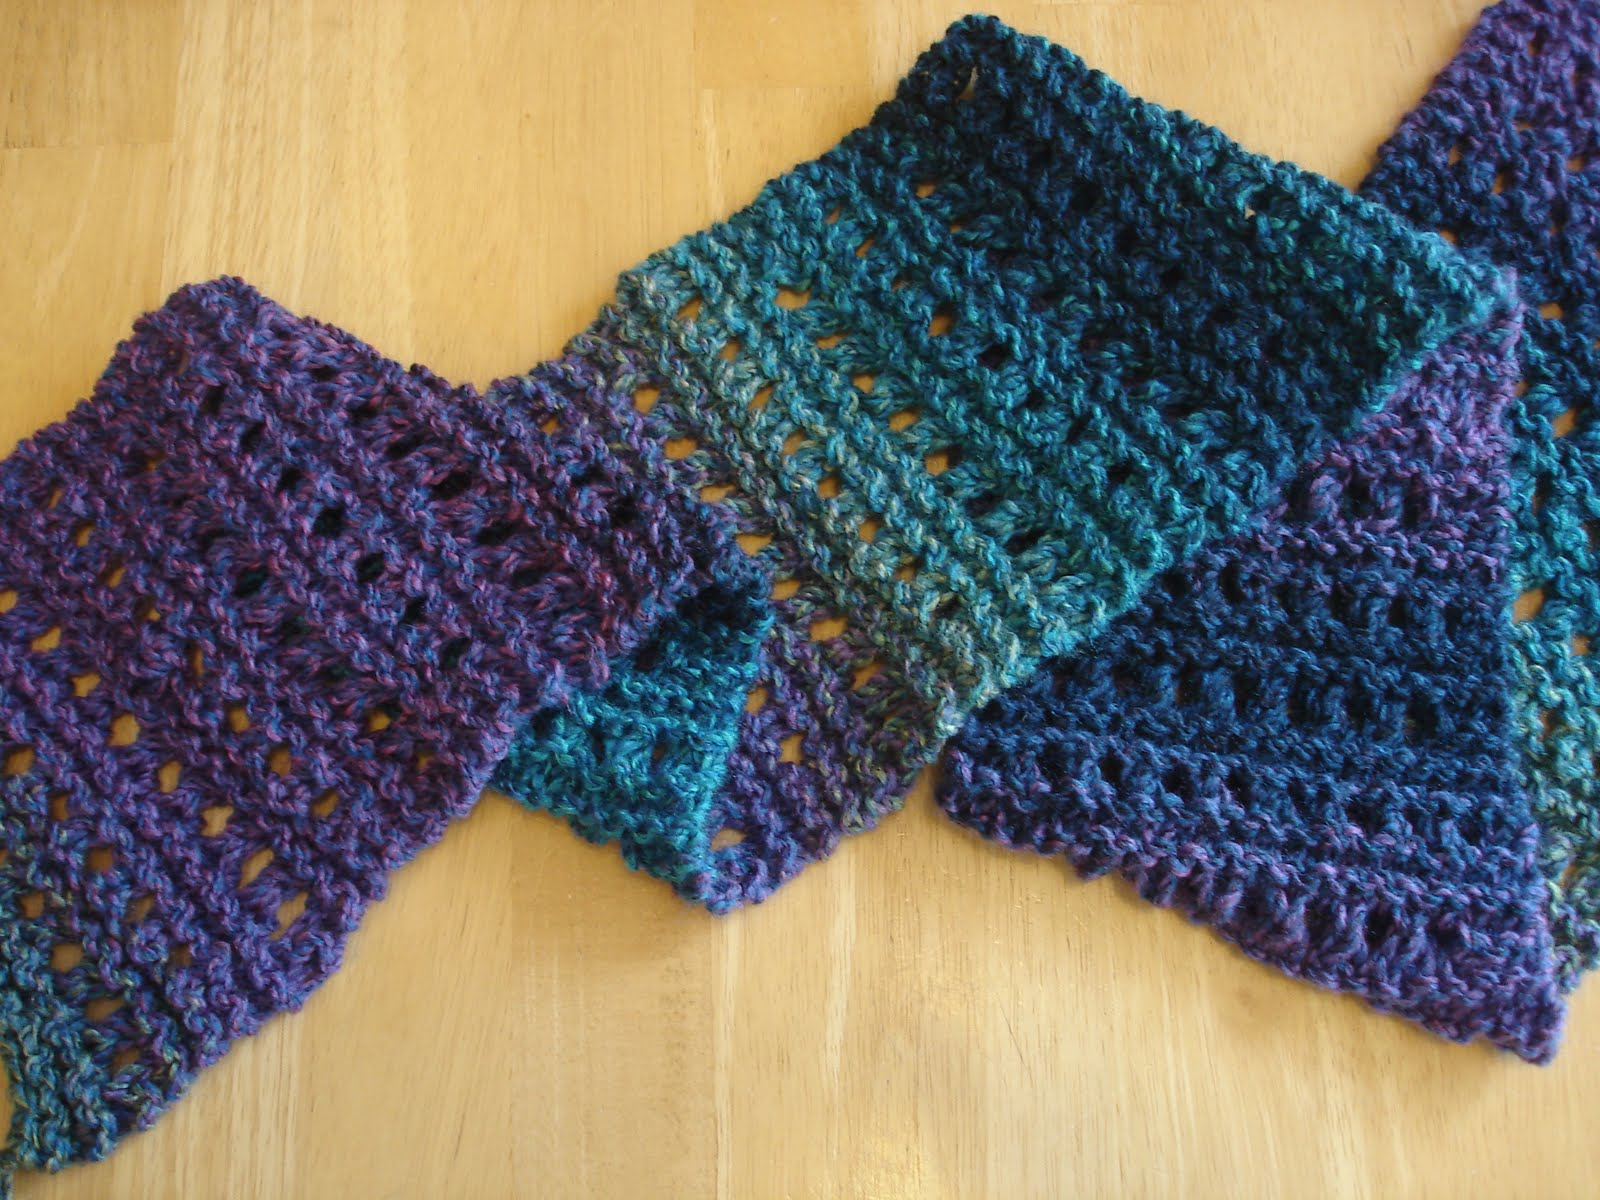 Knitting Pattern For Simple Scarf : Fiber Flux: Free Knitting Pattern: Tweedy Eyelet Scarf!